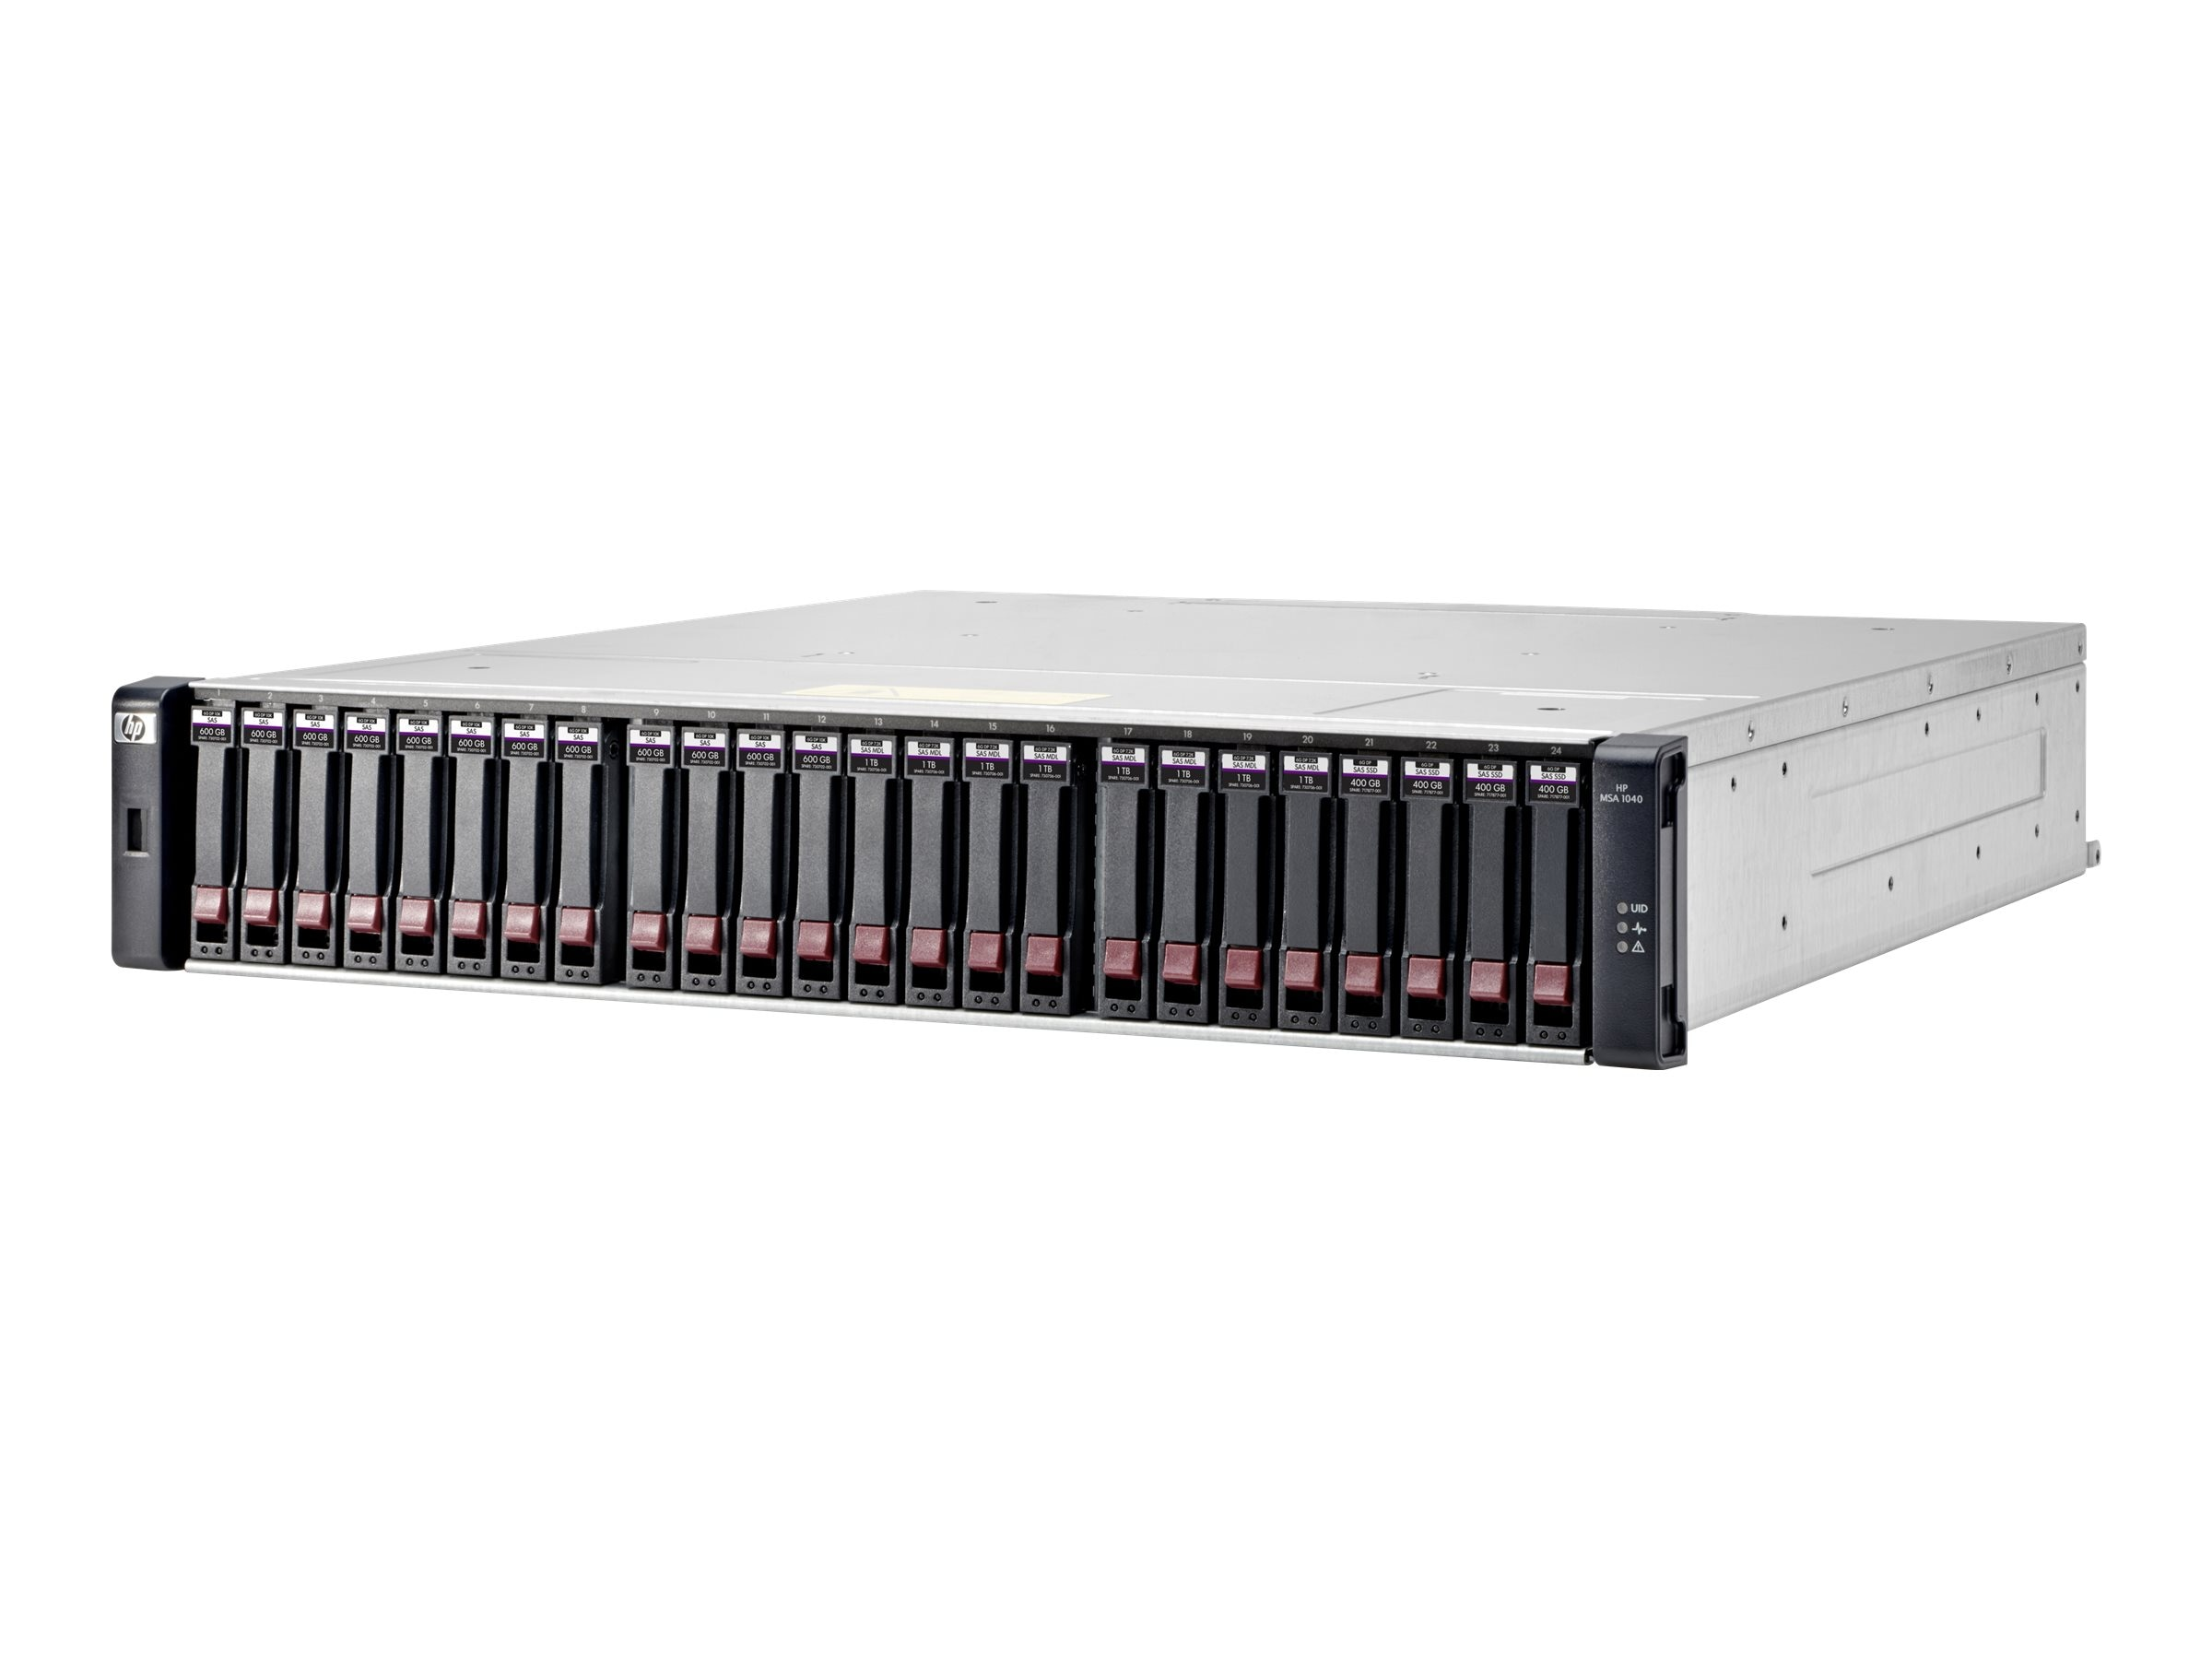 HPE MSA 1040 10Gb iSCSI Storage Array Bundle w  (12) 900GB SAS 10K RPM SFF Hard Drives, K2Q08SB, 17784649, SAN Servers & Arrays